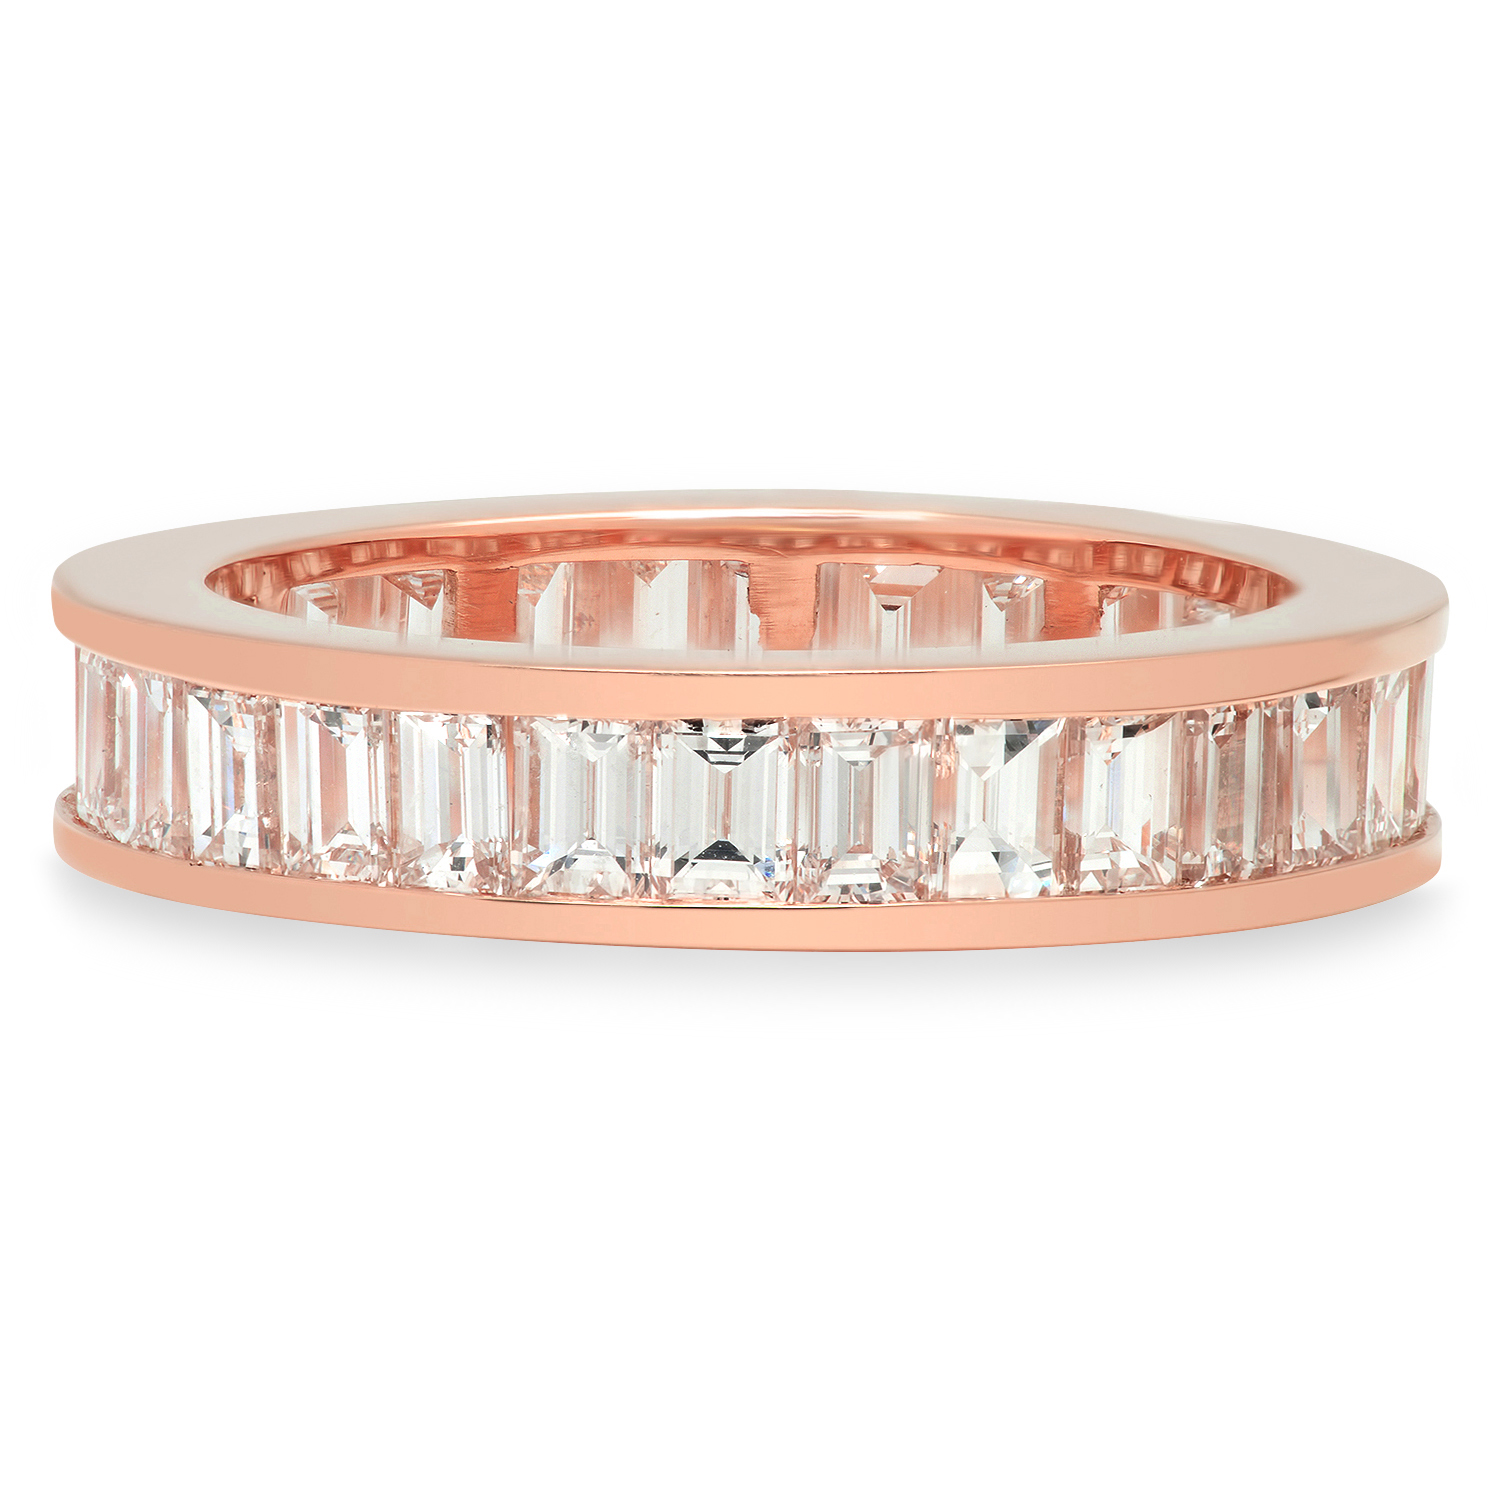 Established Jewelry Editorial Press, ELLE, Baguette Cut Rose Gold Diamond Band